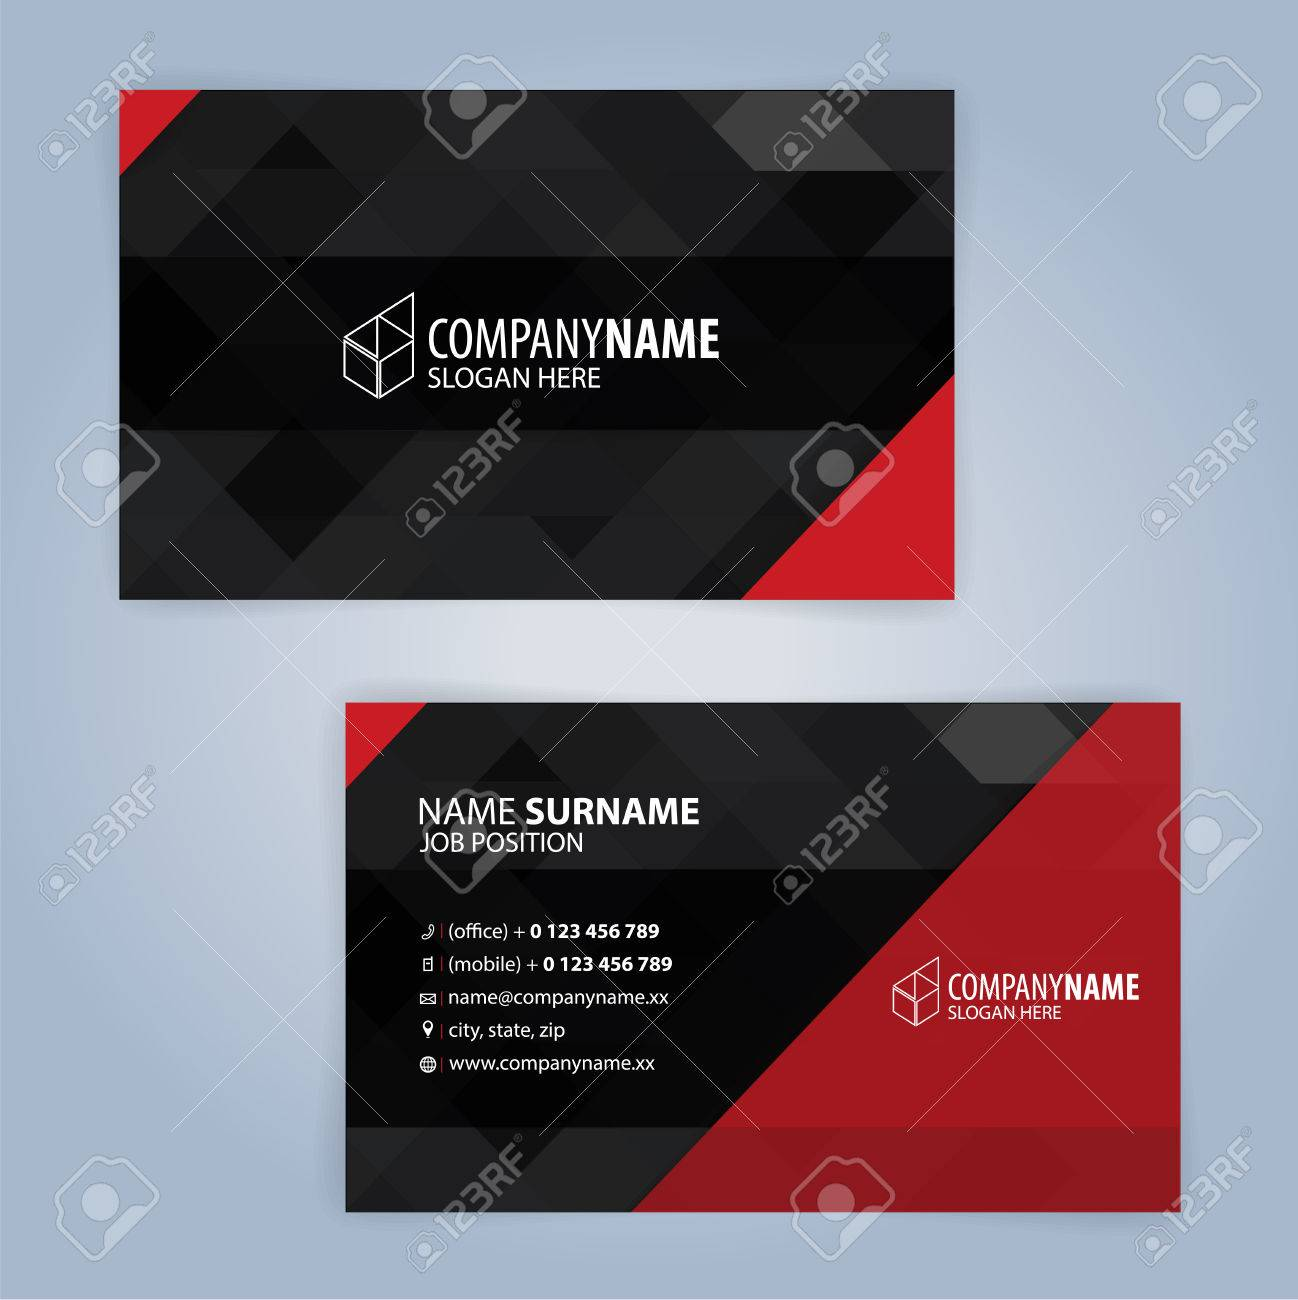 red and black modern business card template illustration royalty